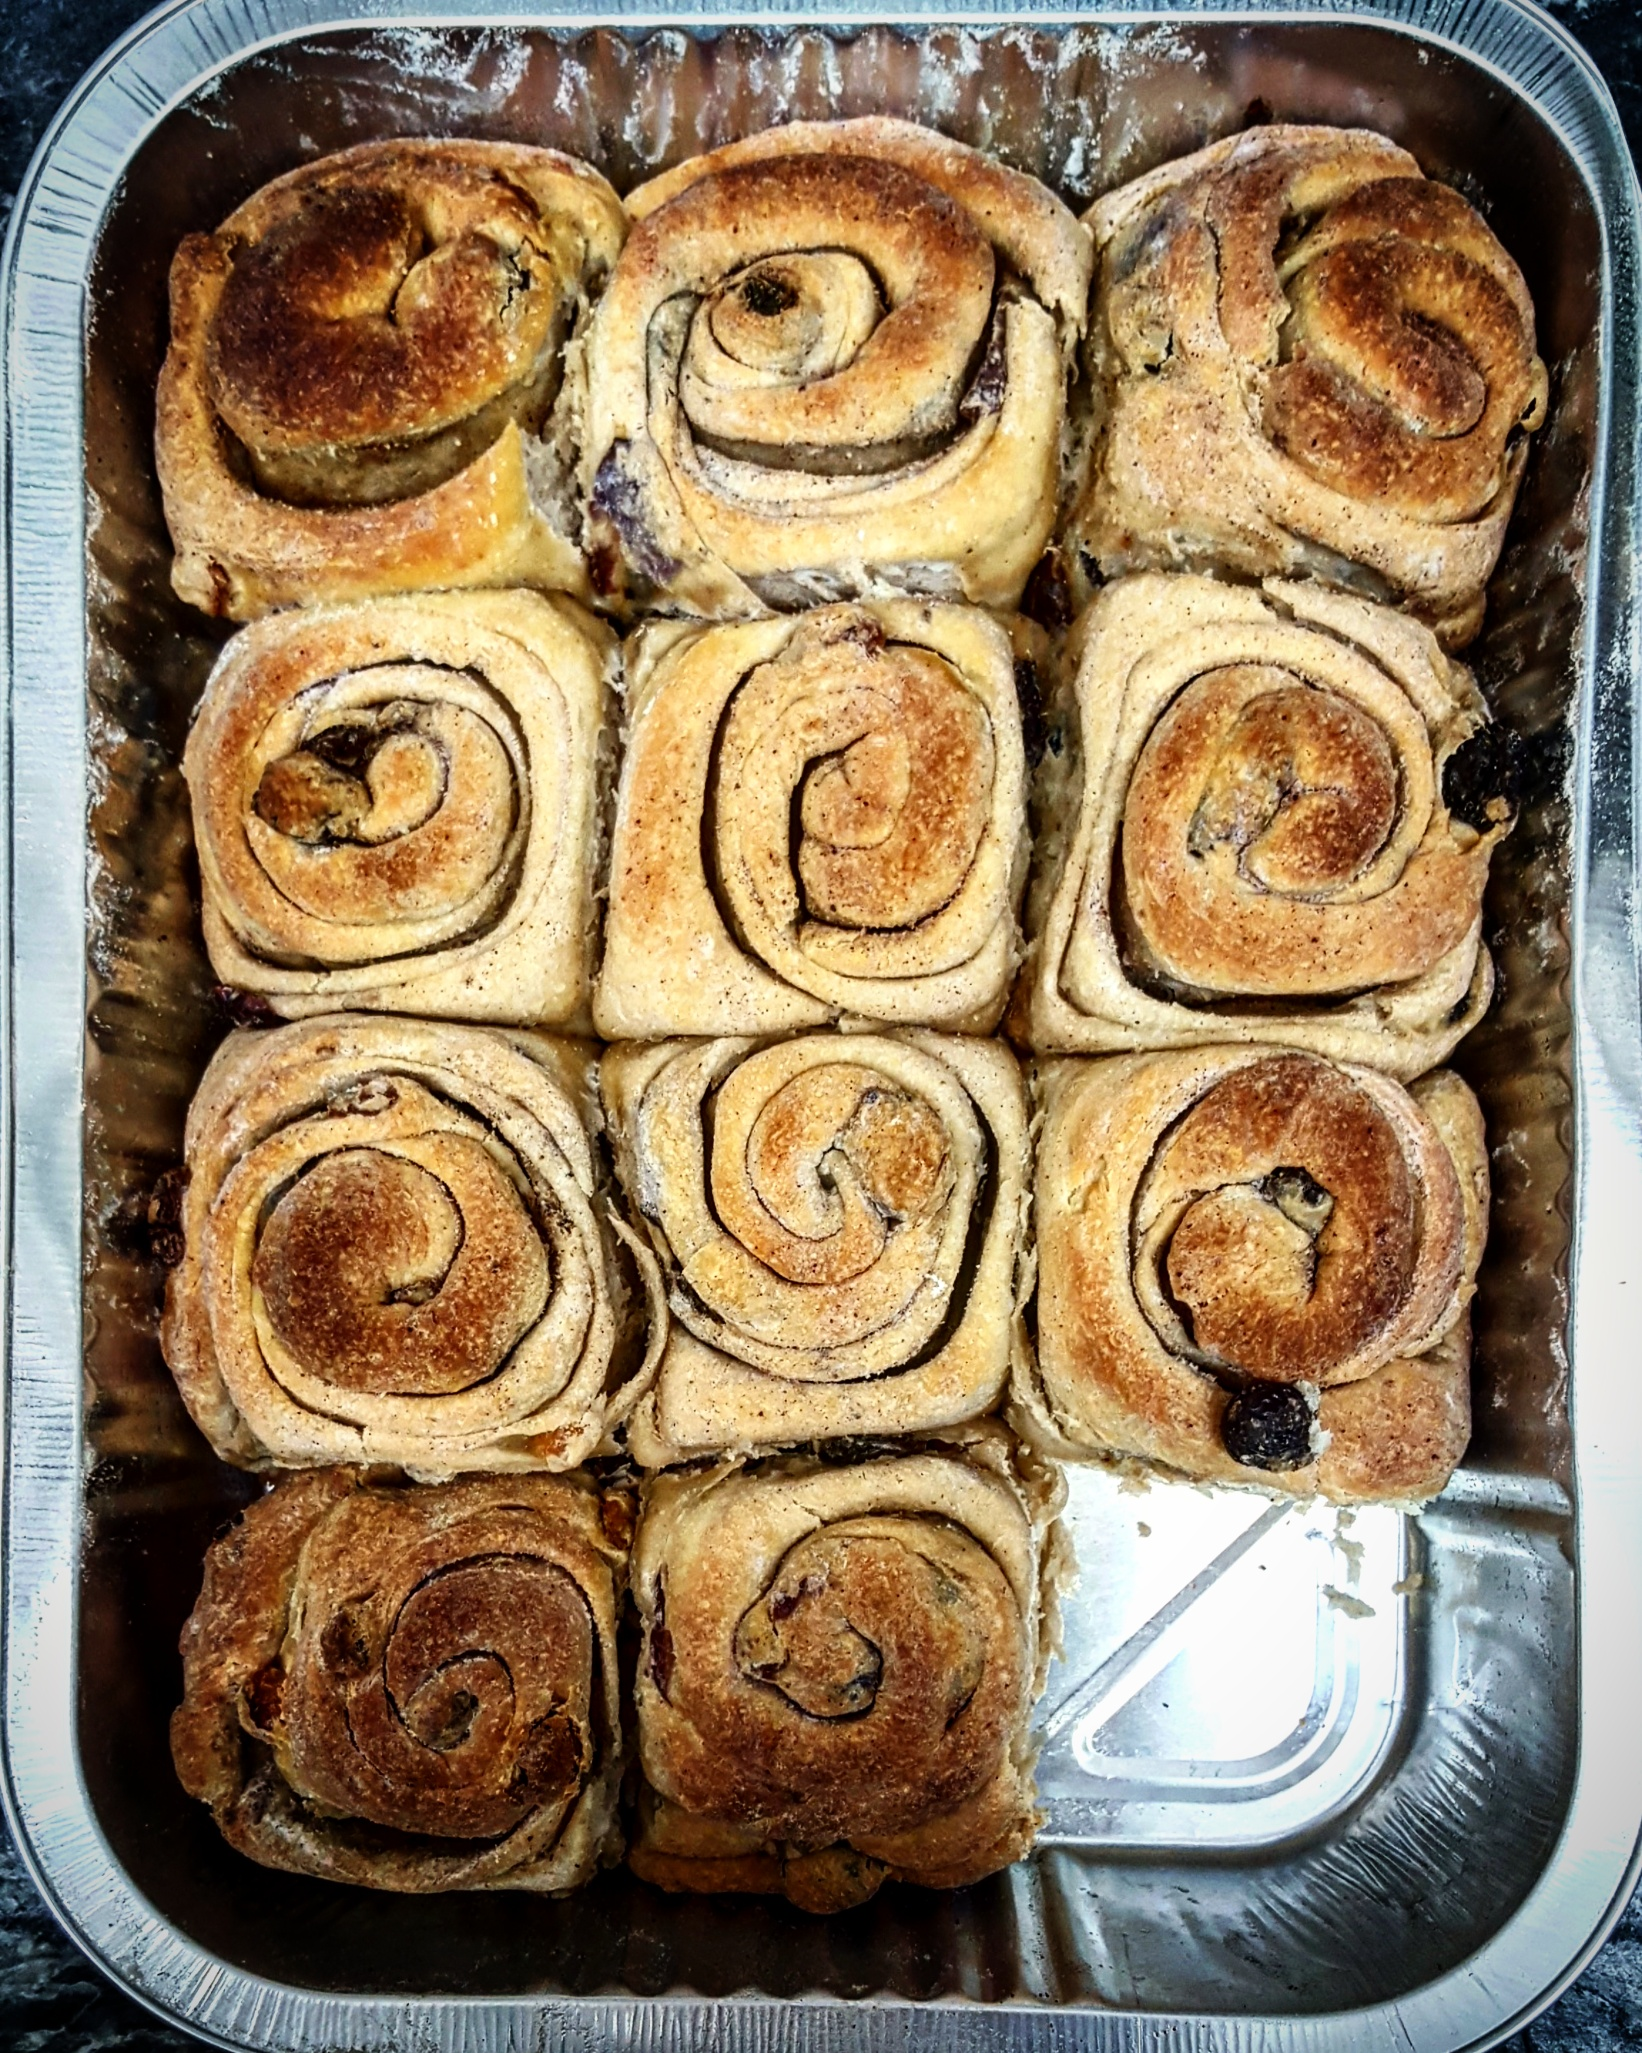 Whirlybuns recipe by Jack Monroe